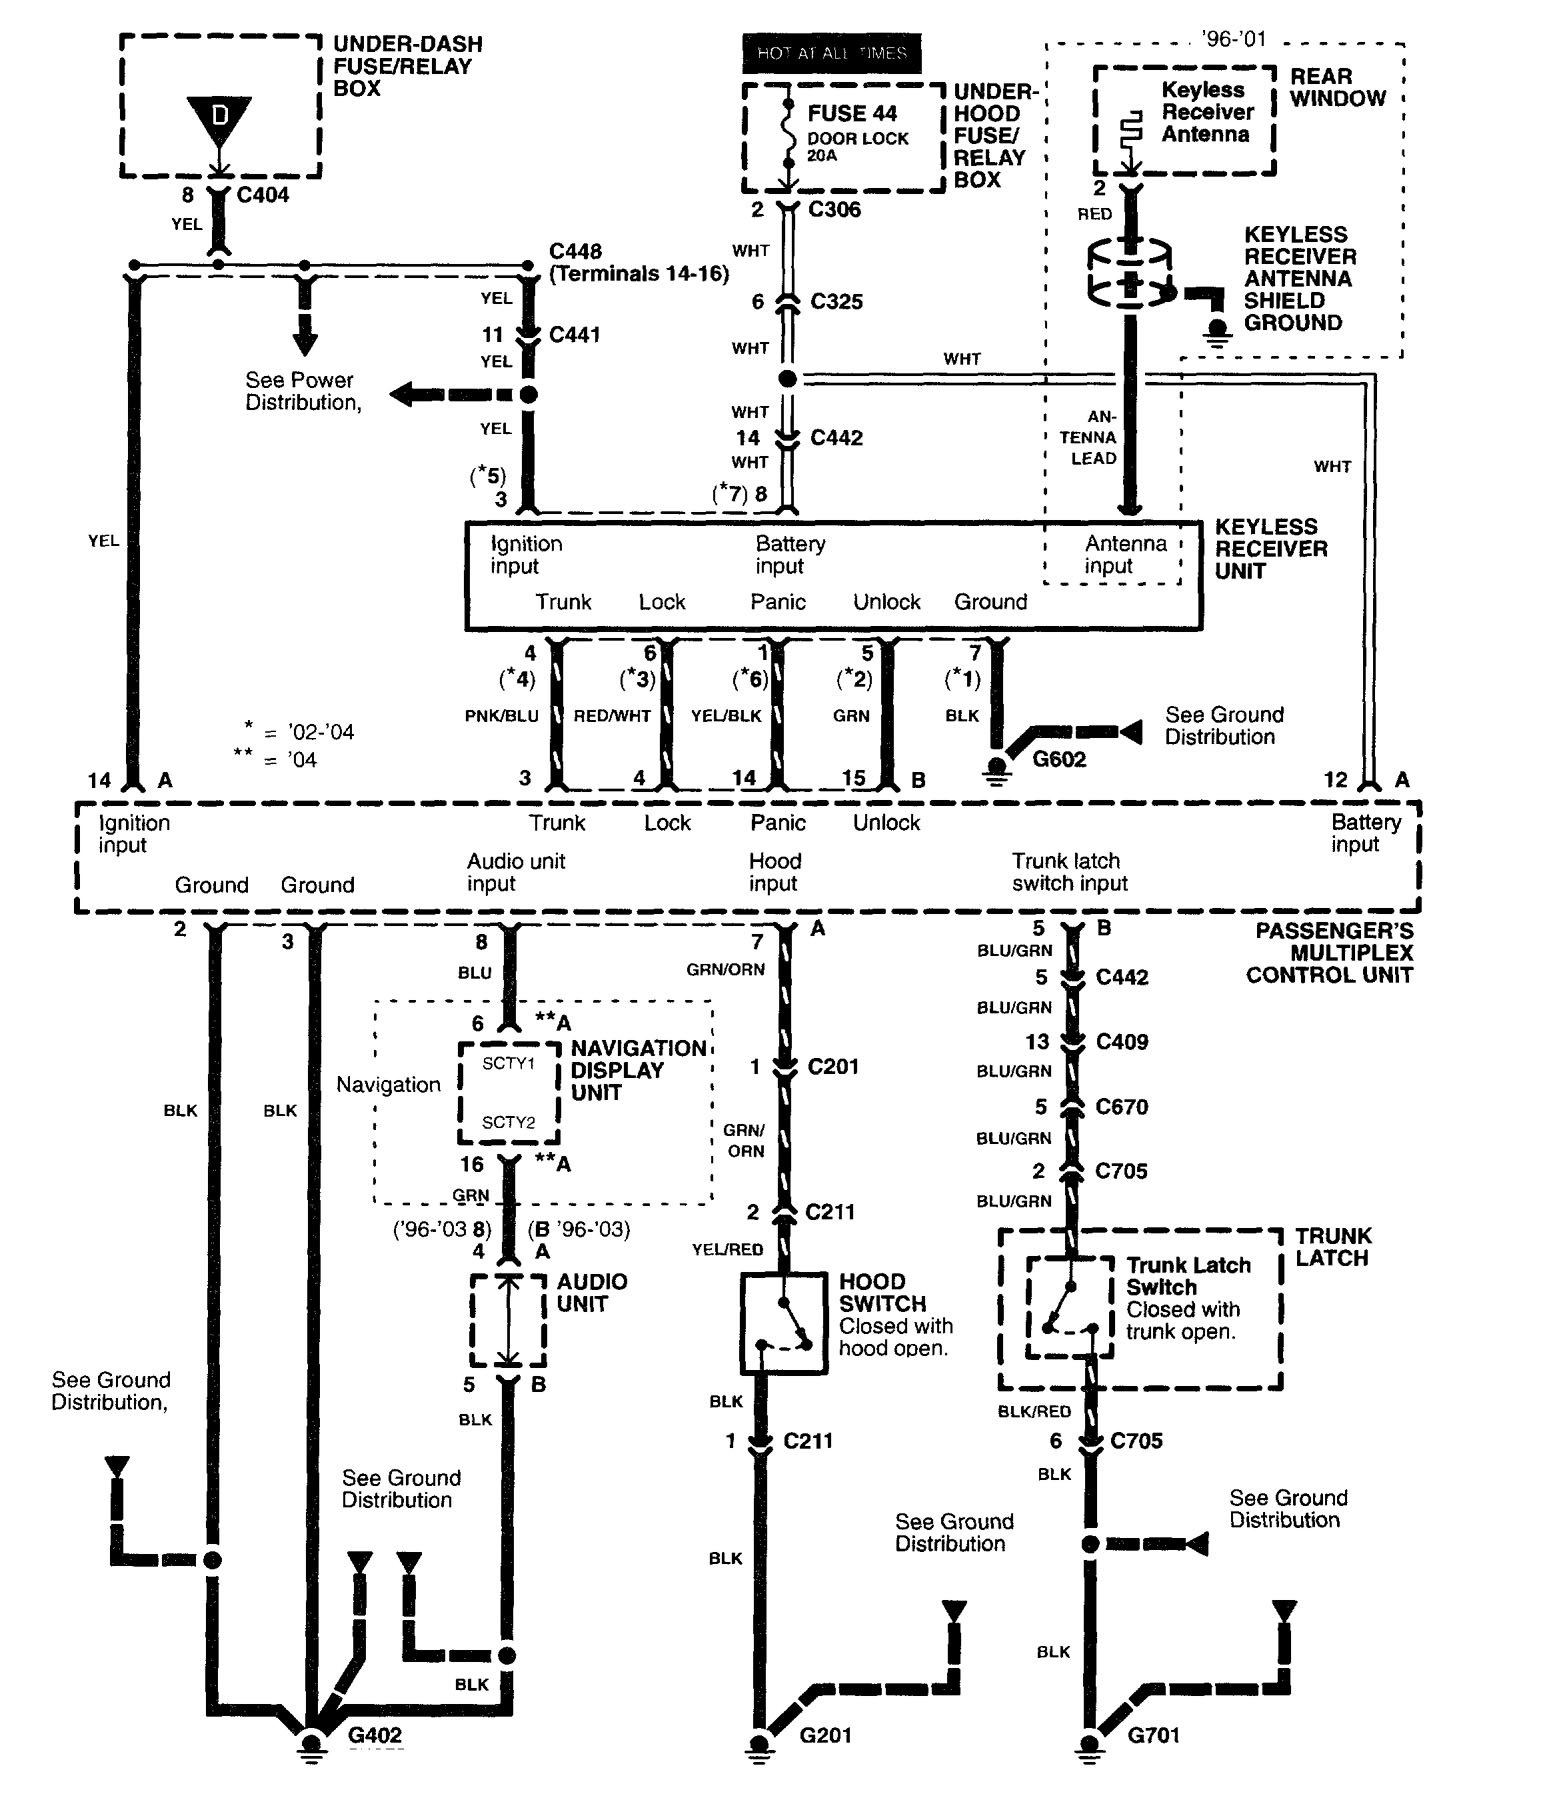 Acura Rl Wiring Diagrams Security Anti Theft. Acura. Auto